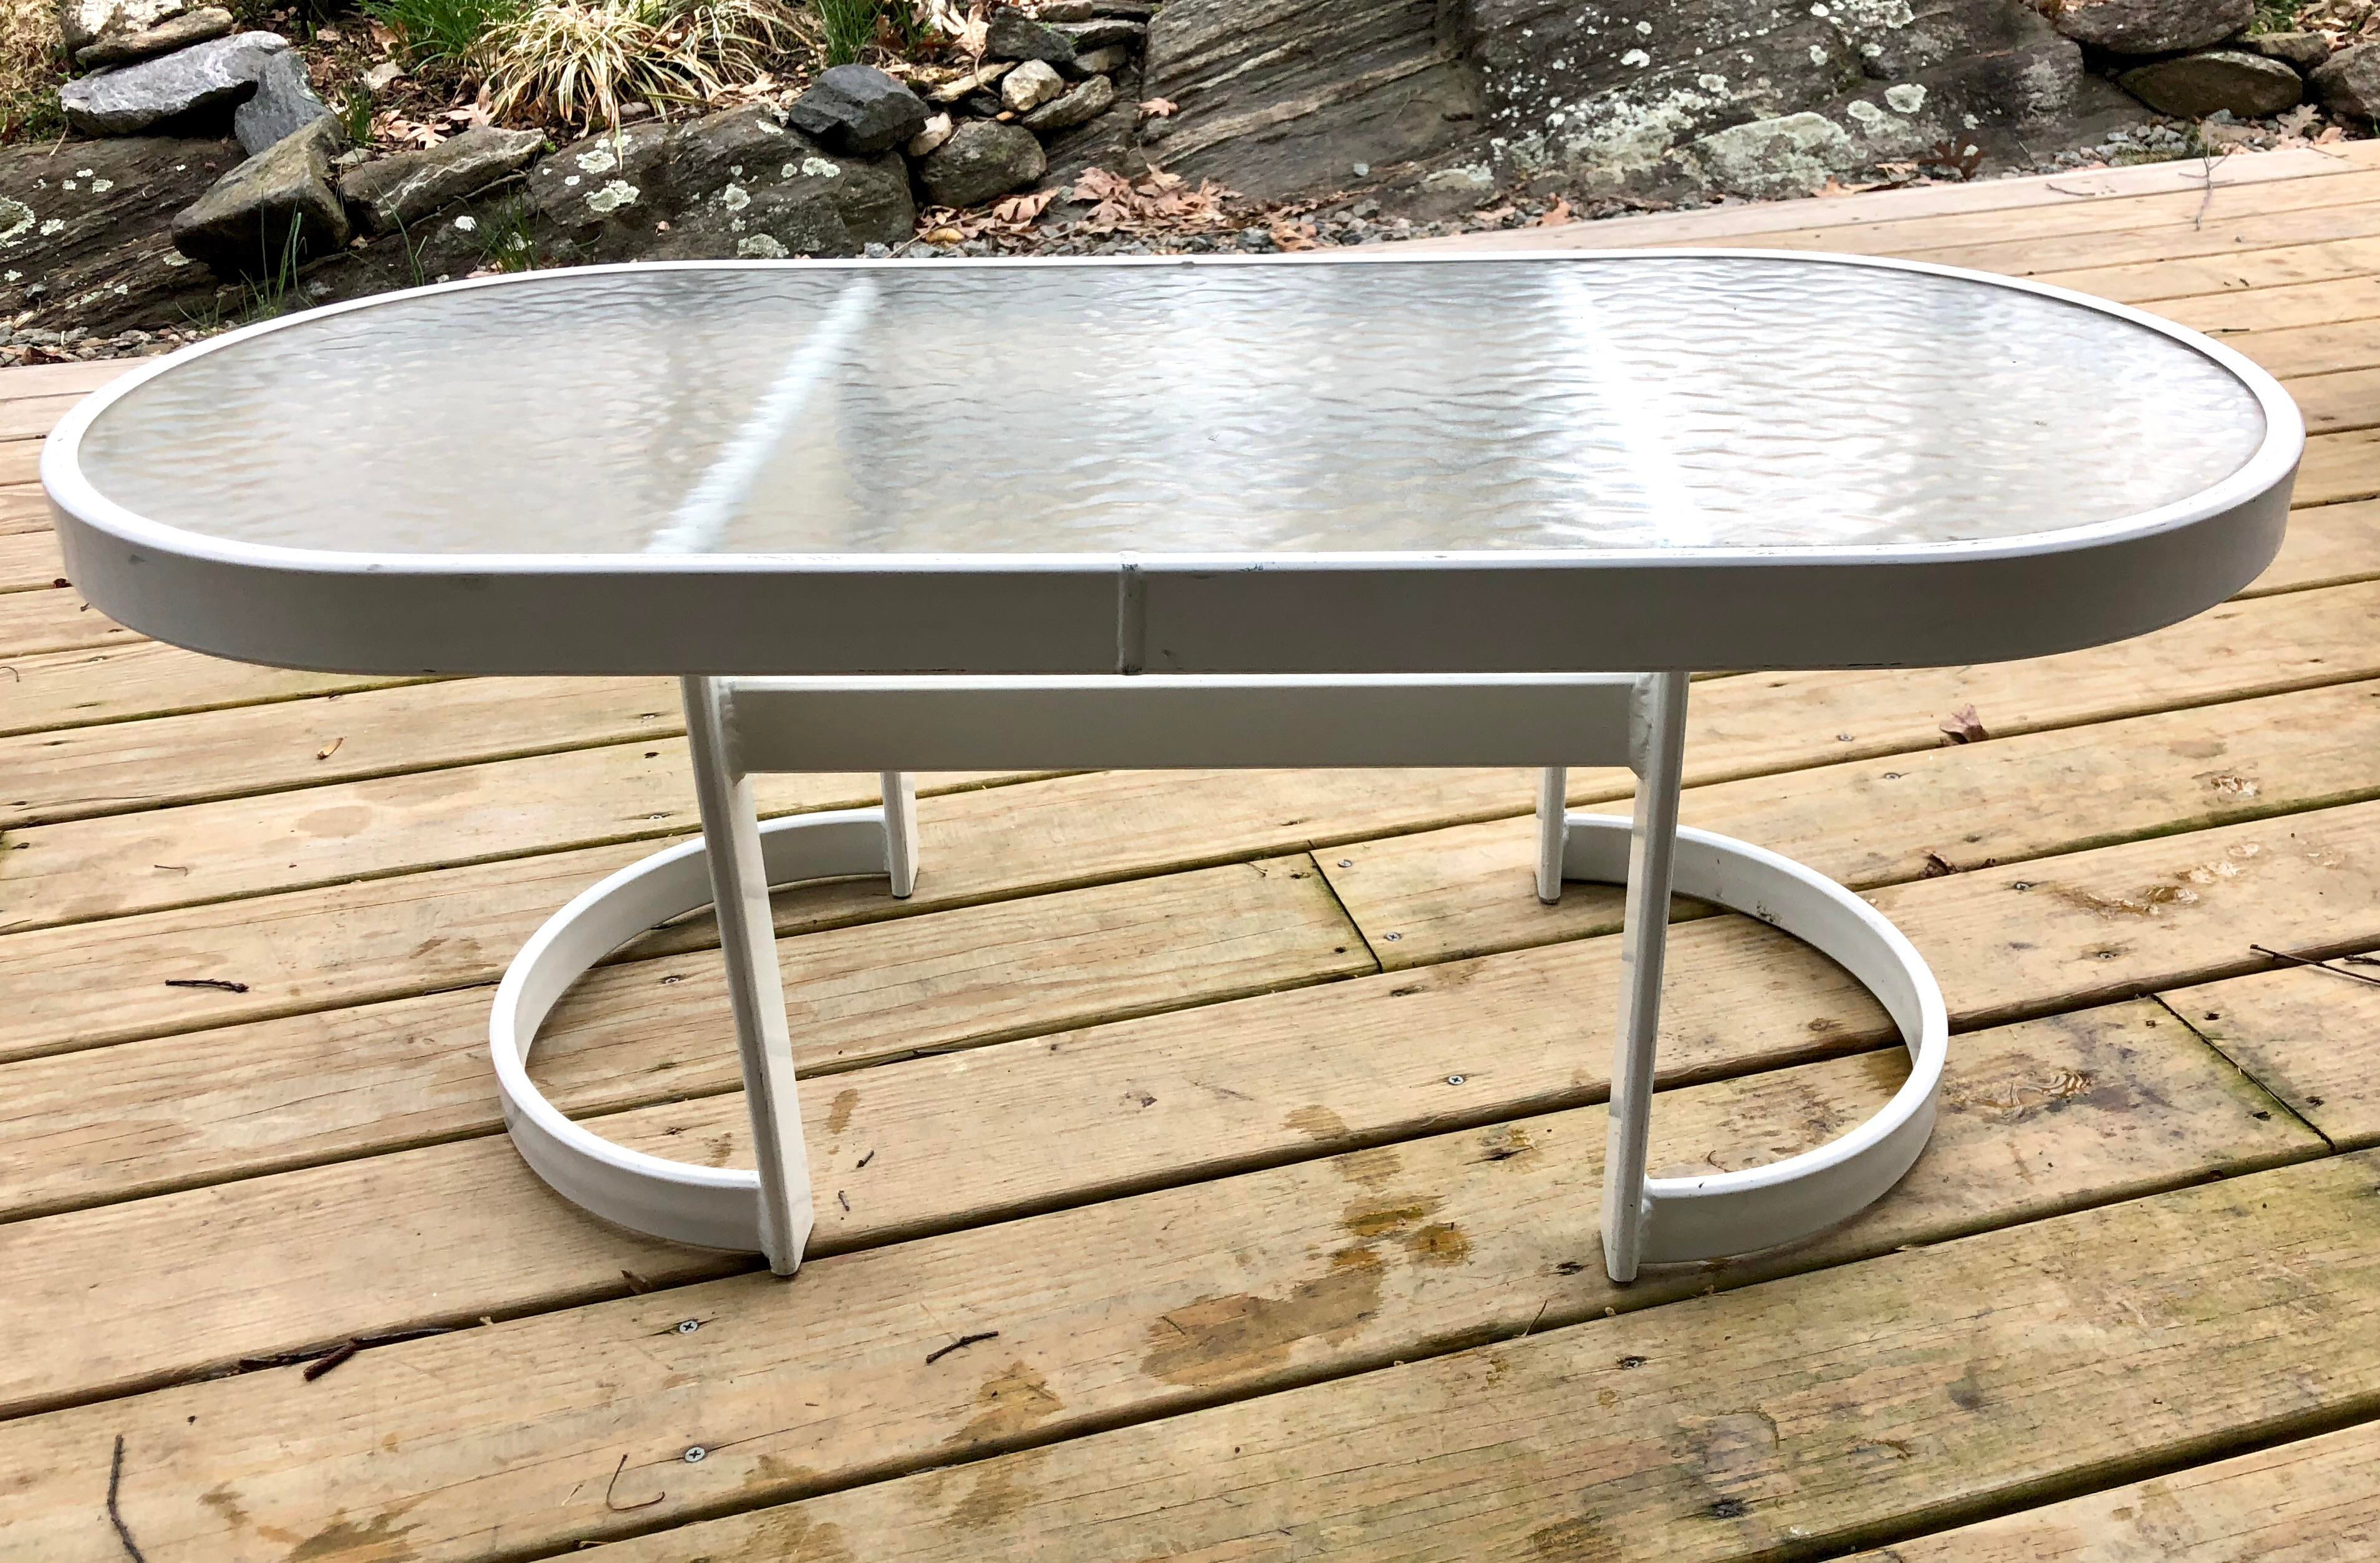 Vintage Modern Winston Coffee / Side Table In White Powder Coat And Glass  Top This Is